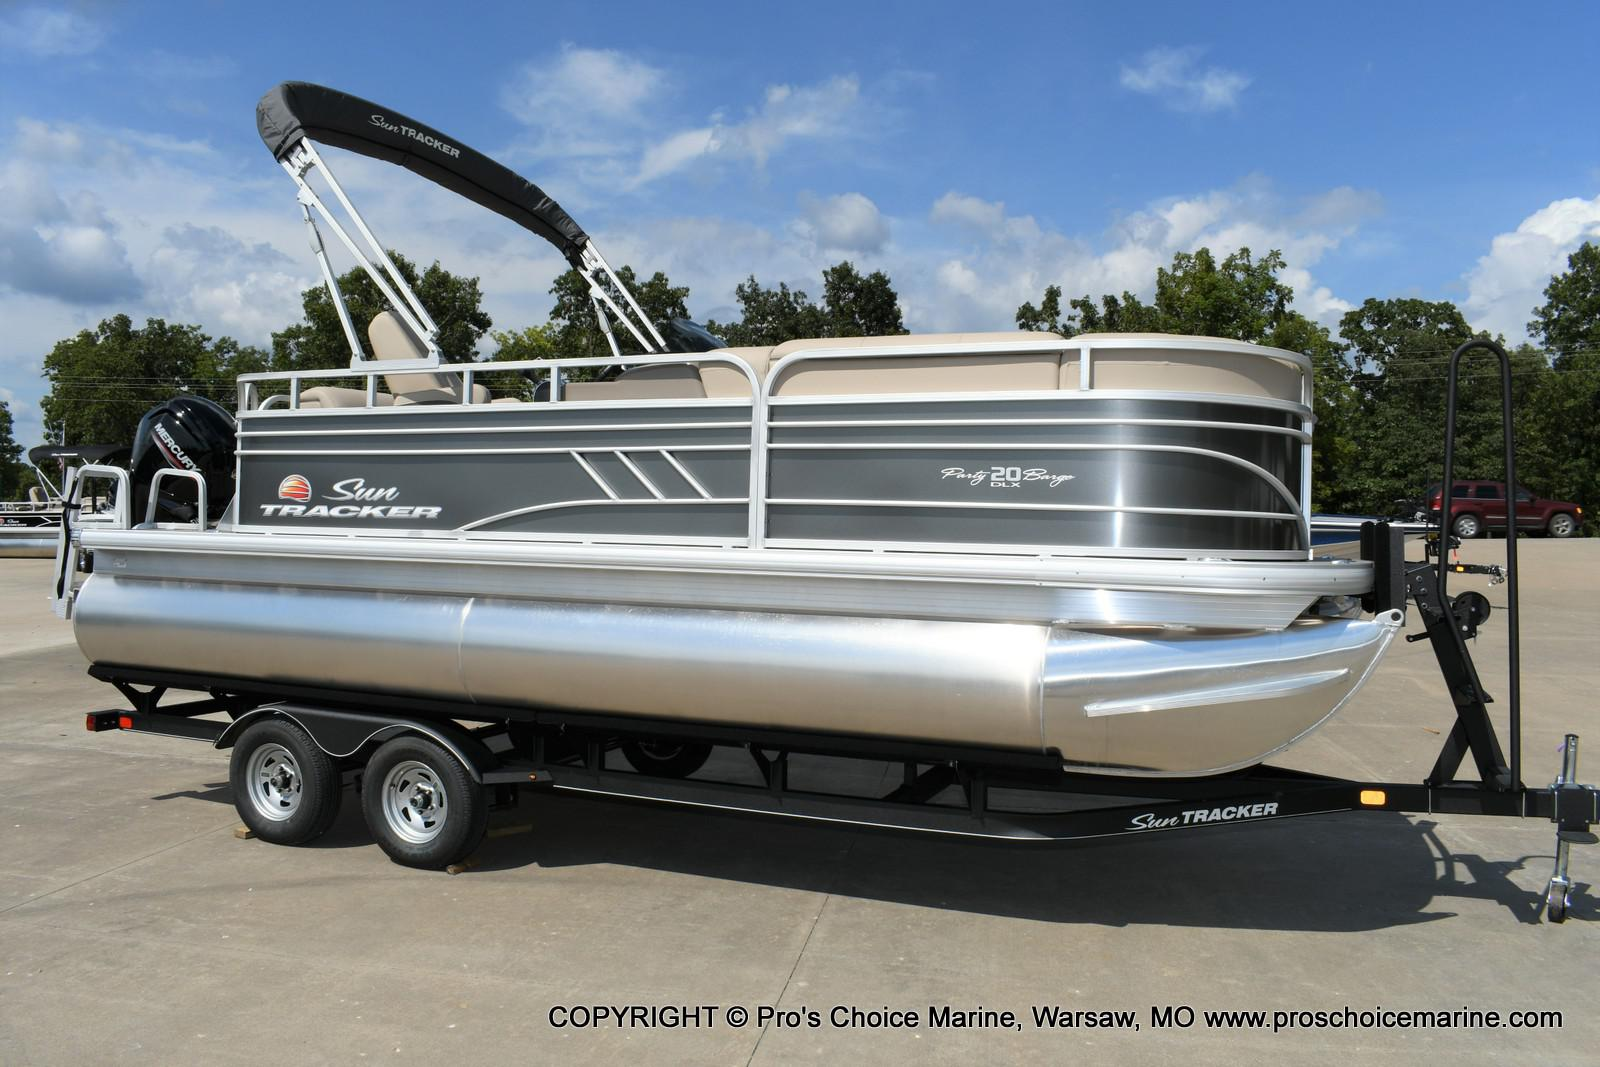 2020 Sun Tracker boat for sale, model of the boat is Party Barge 20 DLX & Image # 1 of 50